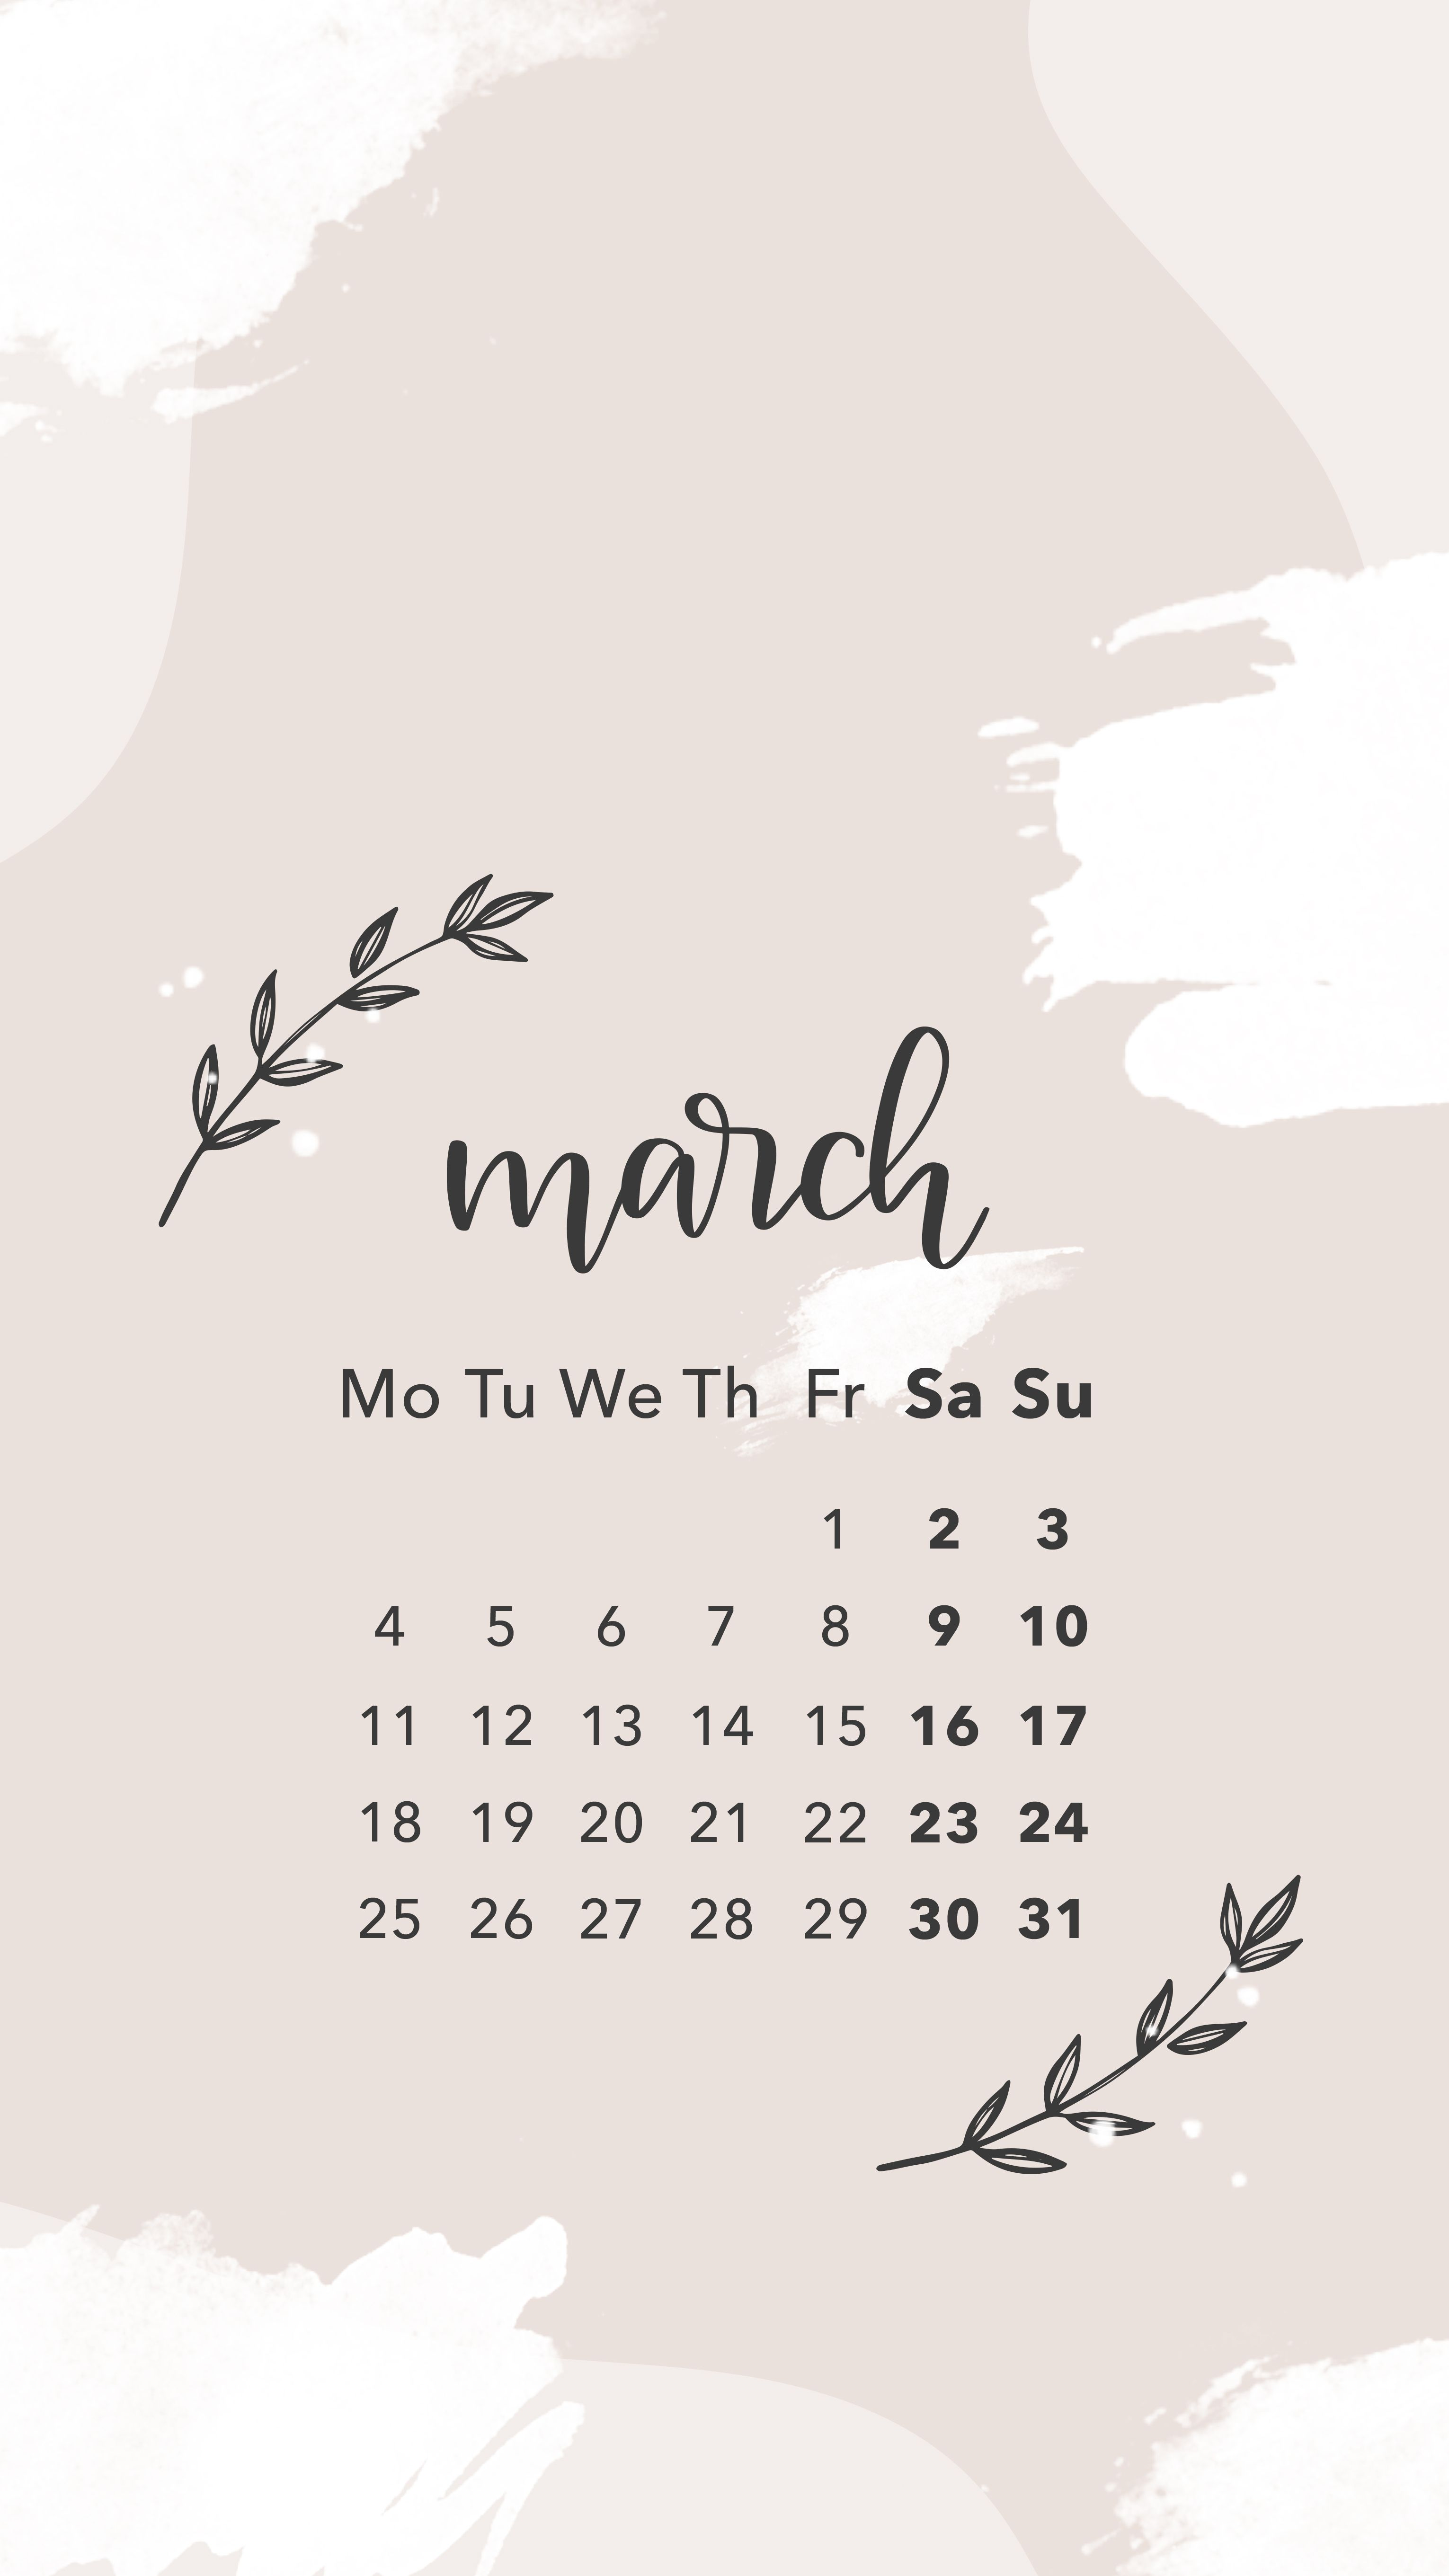 March Wallpaper Screensaver March Calendar Calligraphy Lettering Digital Graphic Design Spark Art Backgrounds Phone Wallpapers